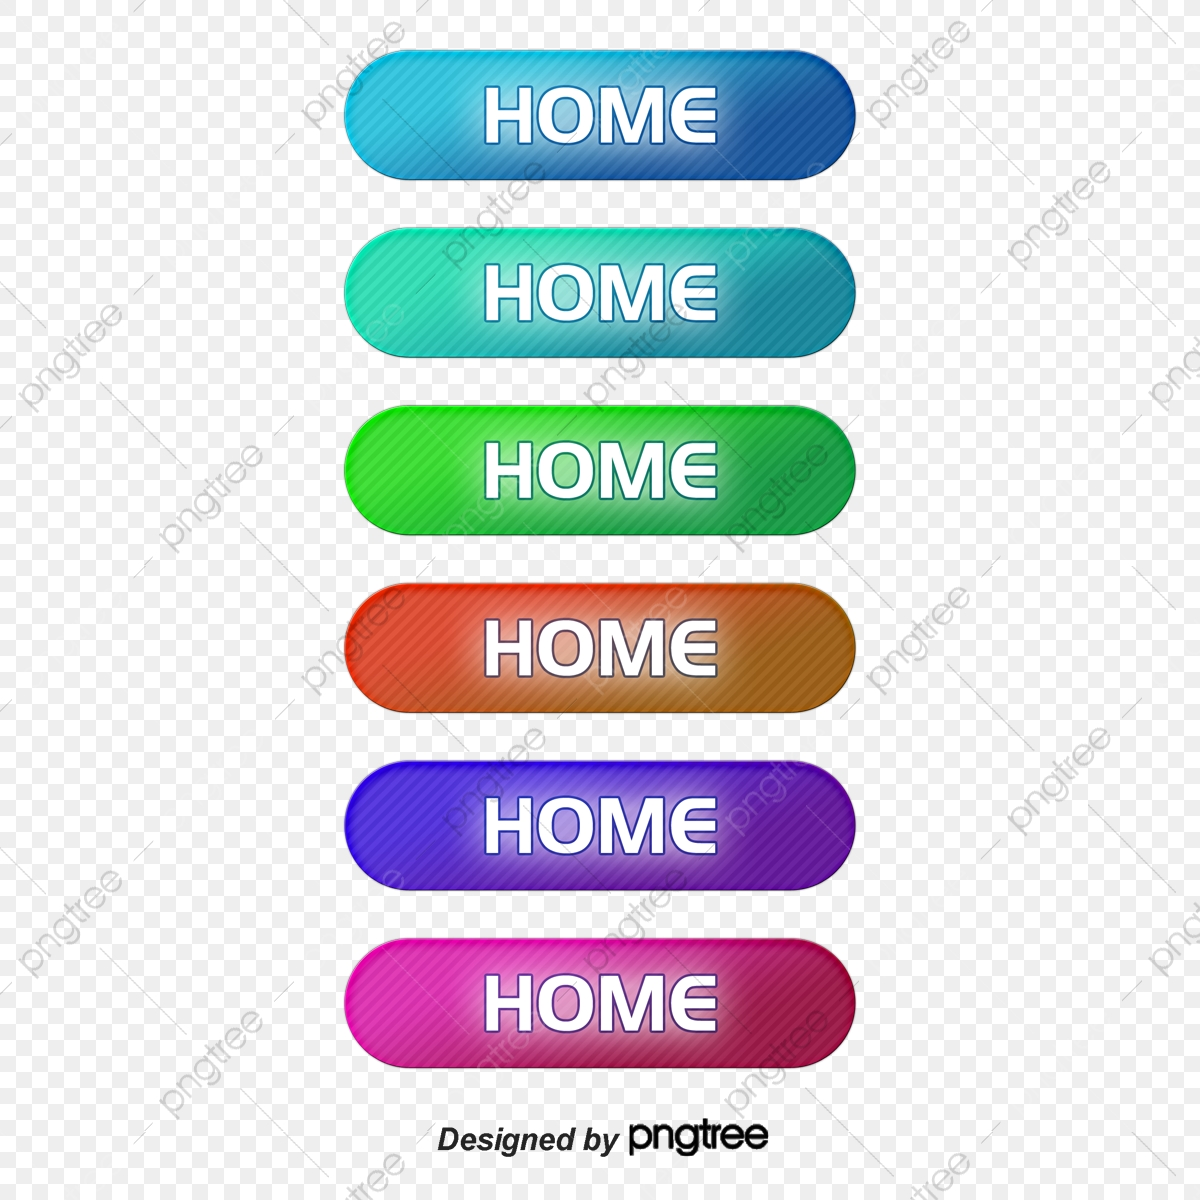 home button png vector psd and clipart with transparent background for free download pngtree https pngtree com freepng home button 490642 html